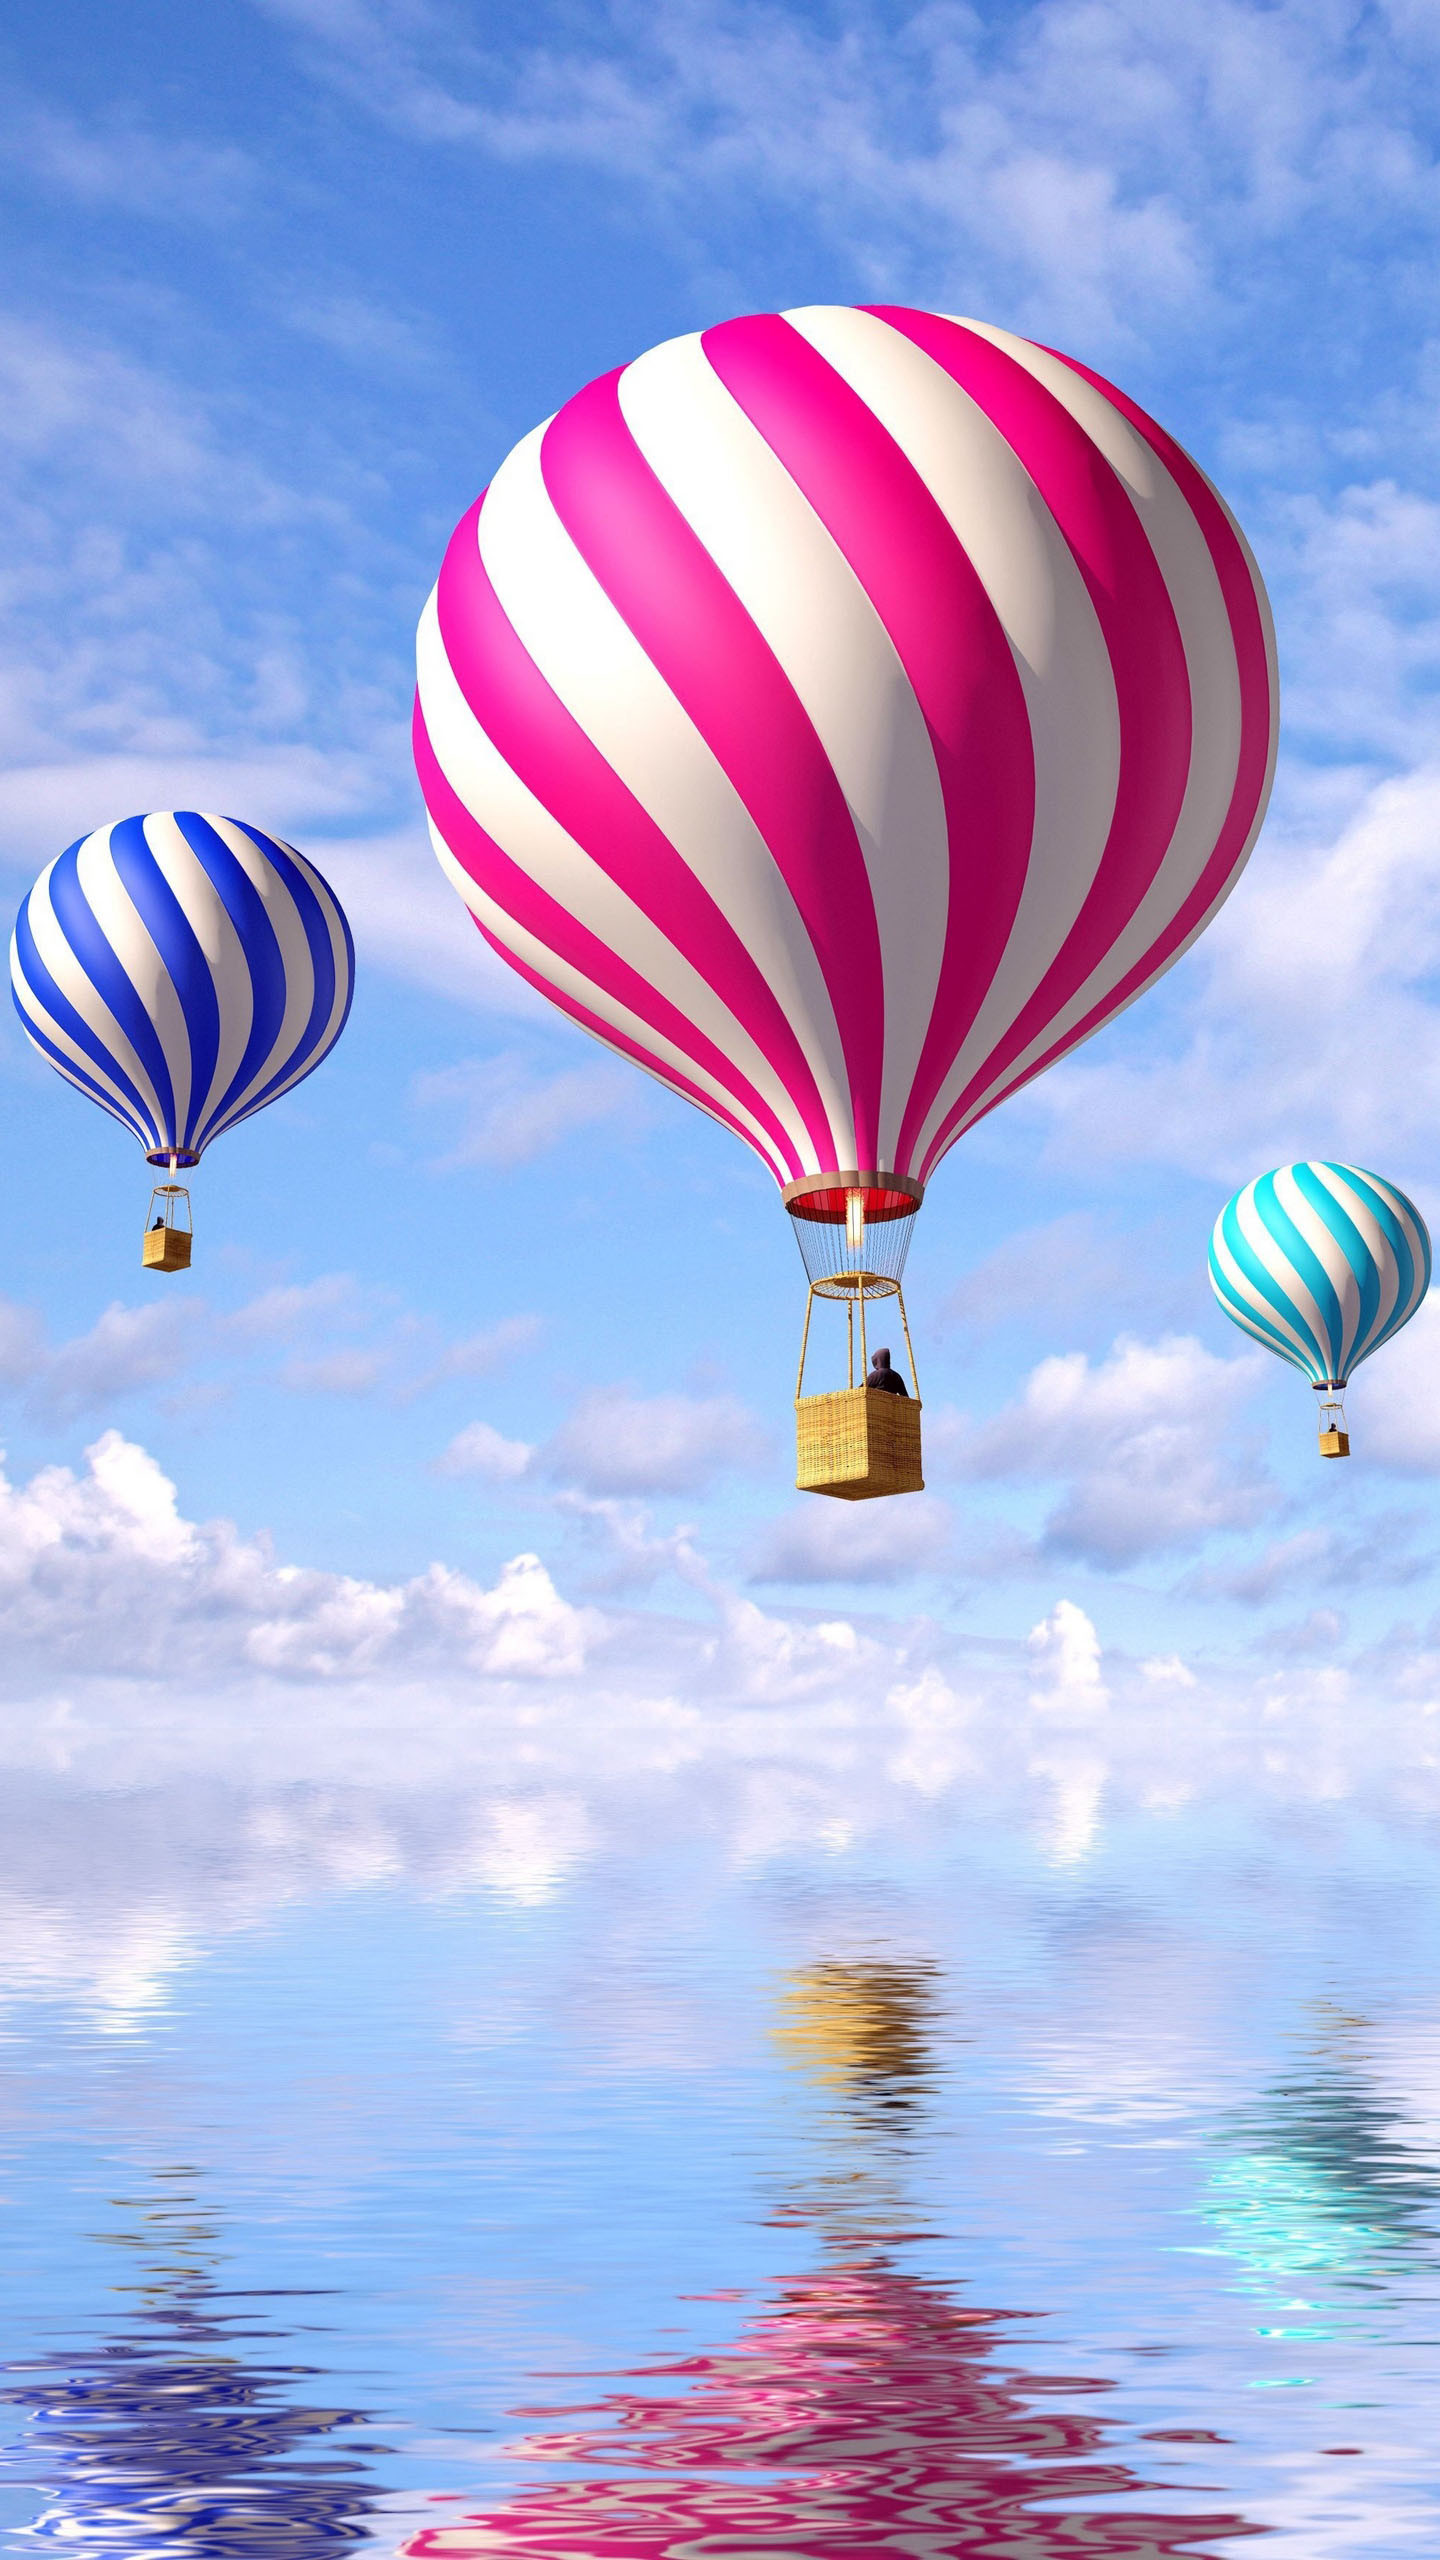 wallpaper keren 3d,hot air balloon,hot air ballooning,balloon,air sports,mode of transport